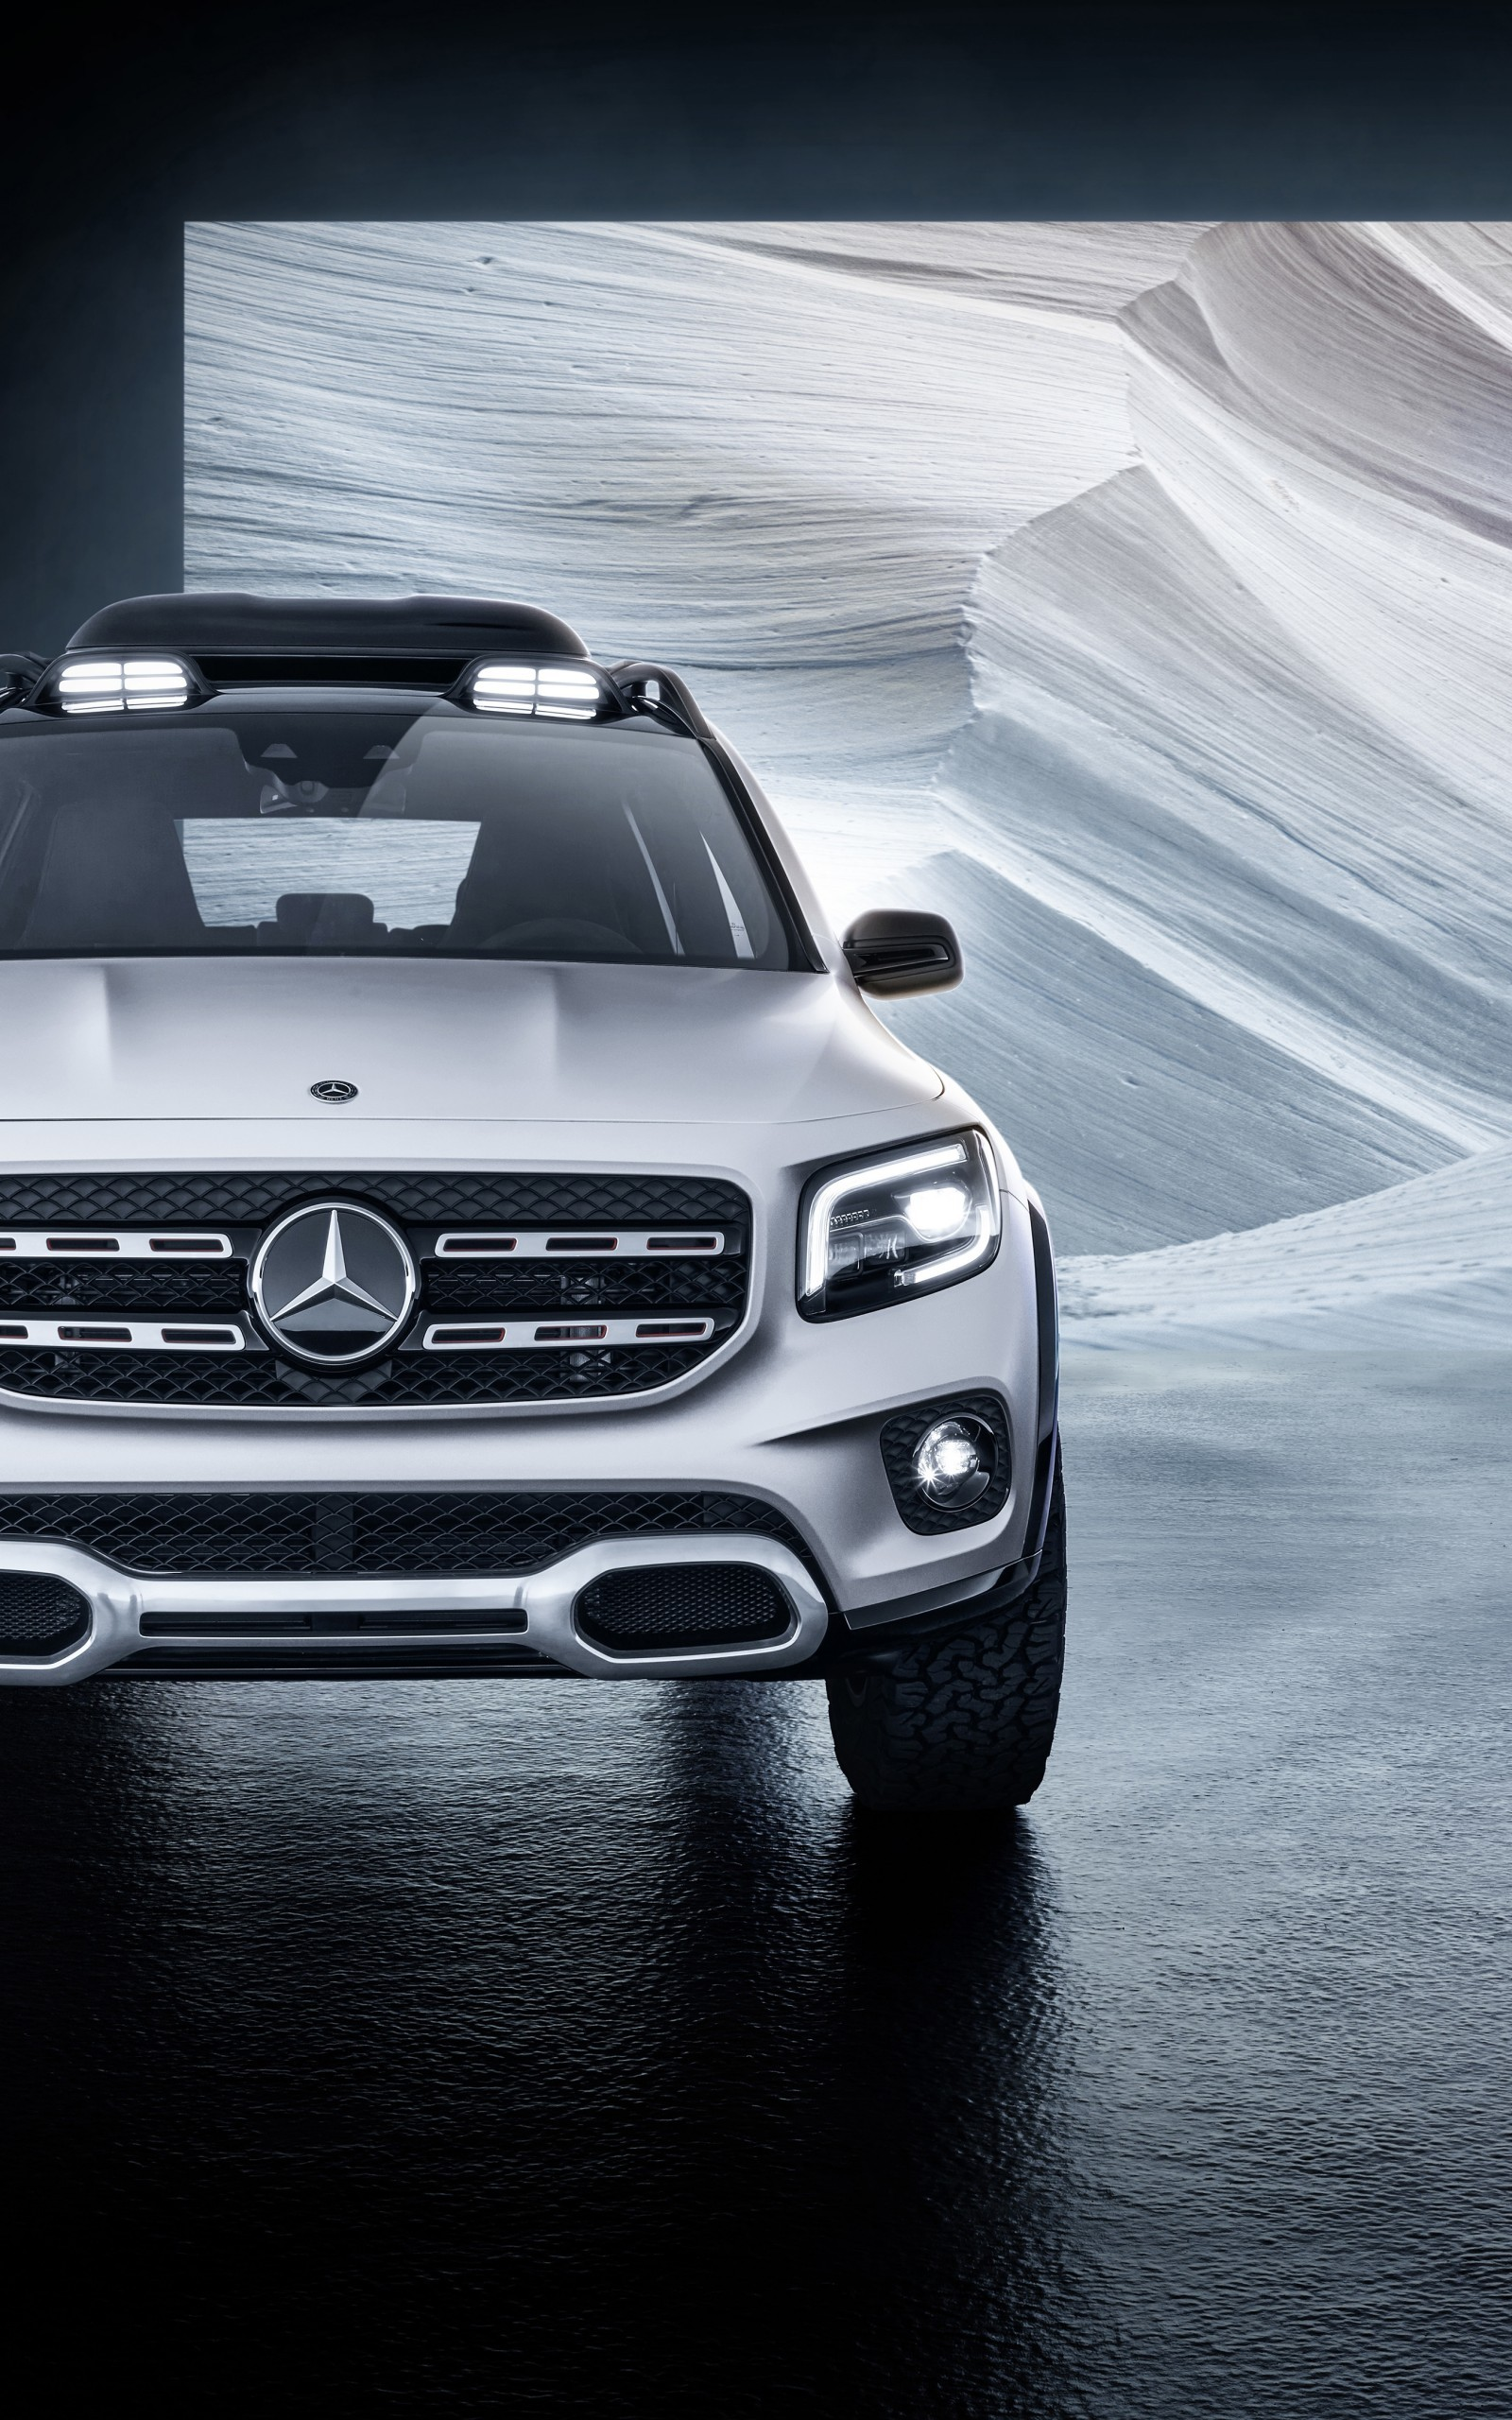 Download 1600x2560 Mercedes benz Glb Class Suv Cars White Front 1600x2560